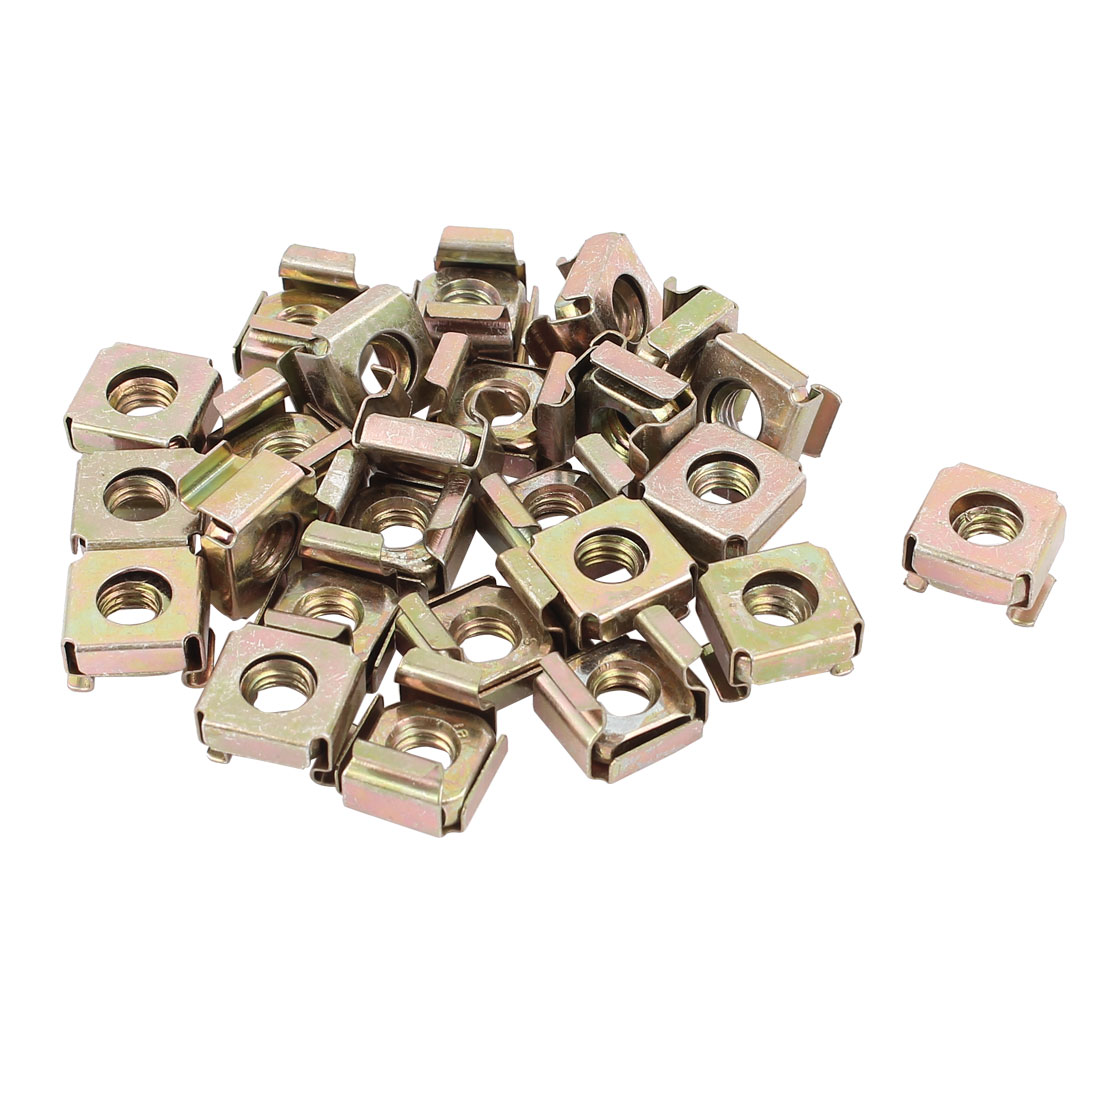 6mm Thread Dia Server Shelves Cabinets Zinc Plated Cage Nuts Screws 25Pcs